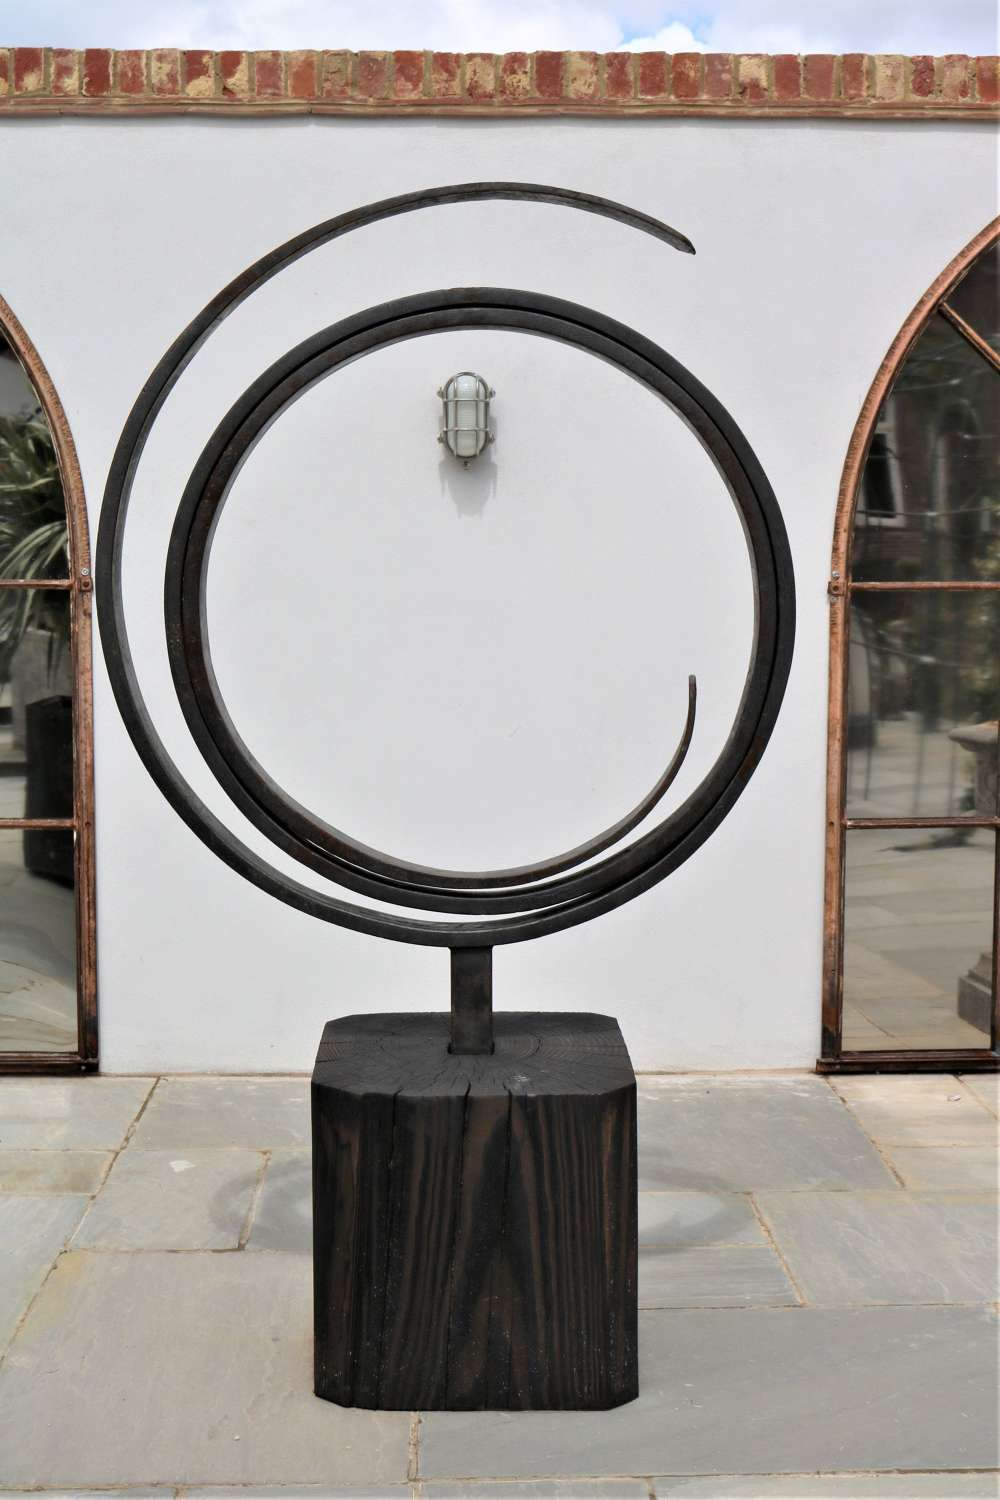 Modern sculpture by Thomas Gontar 'Positive Loop'